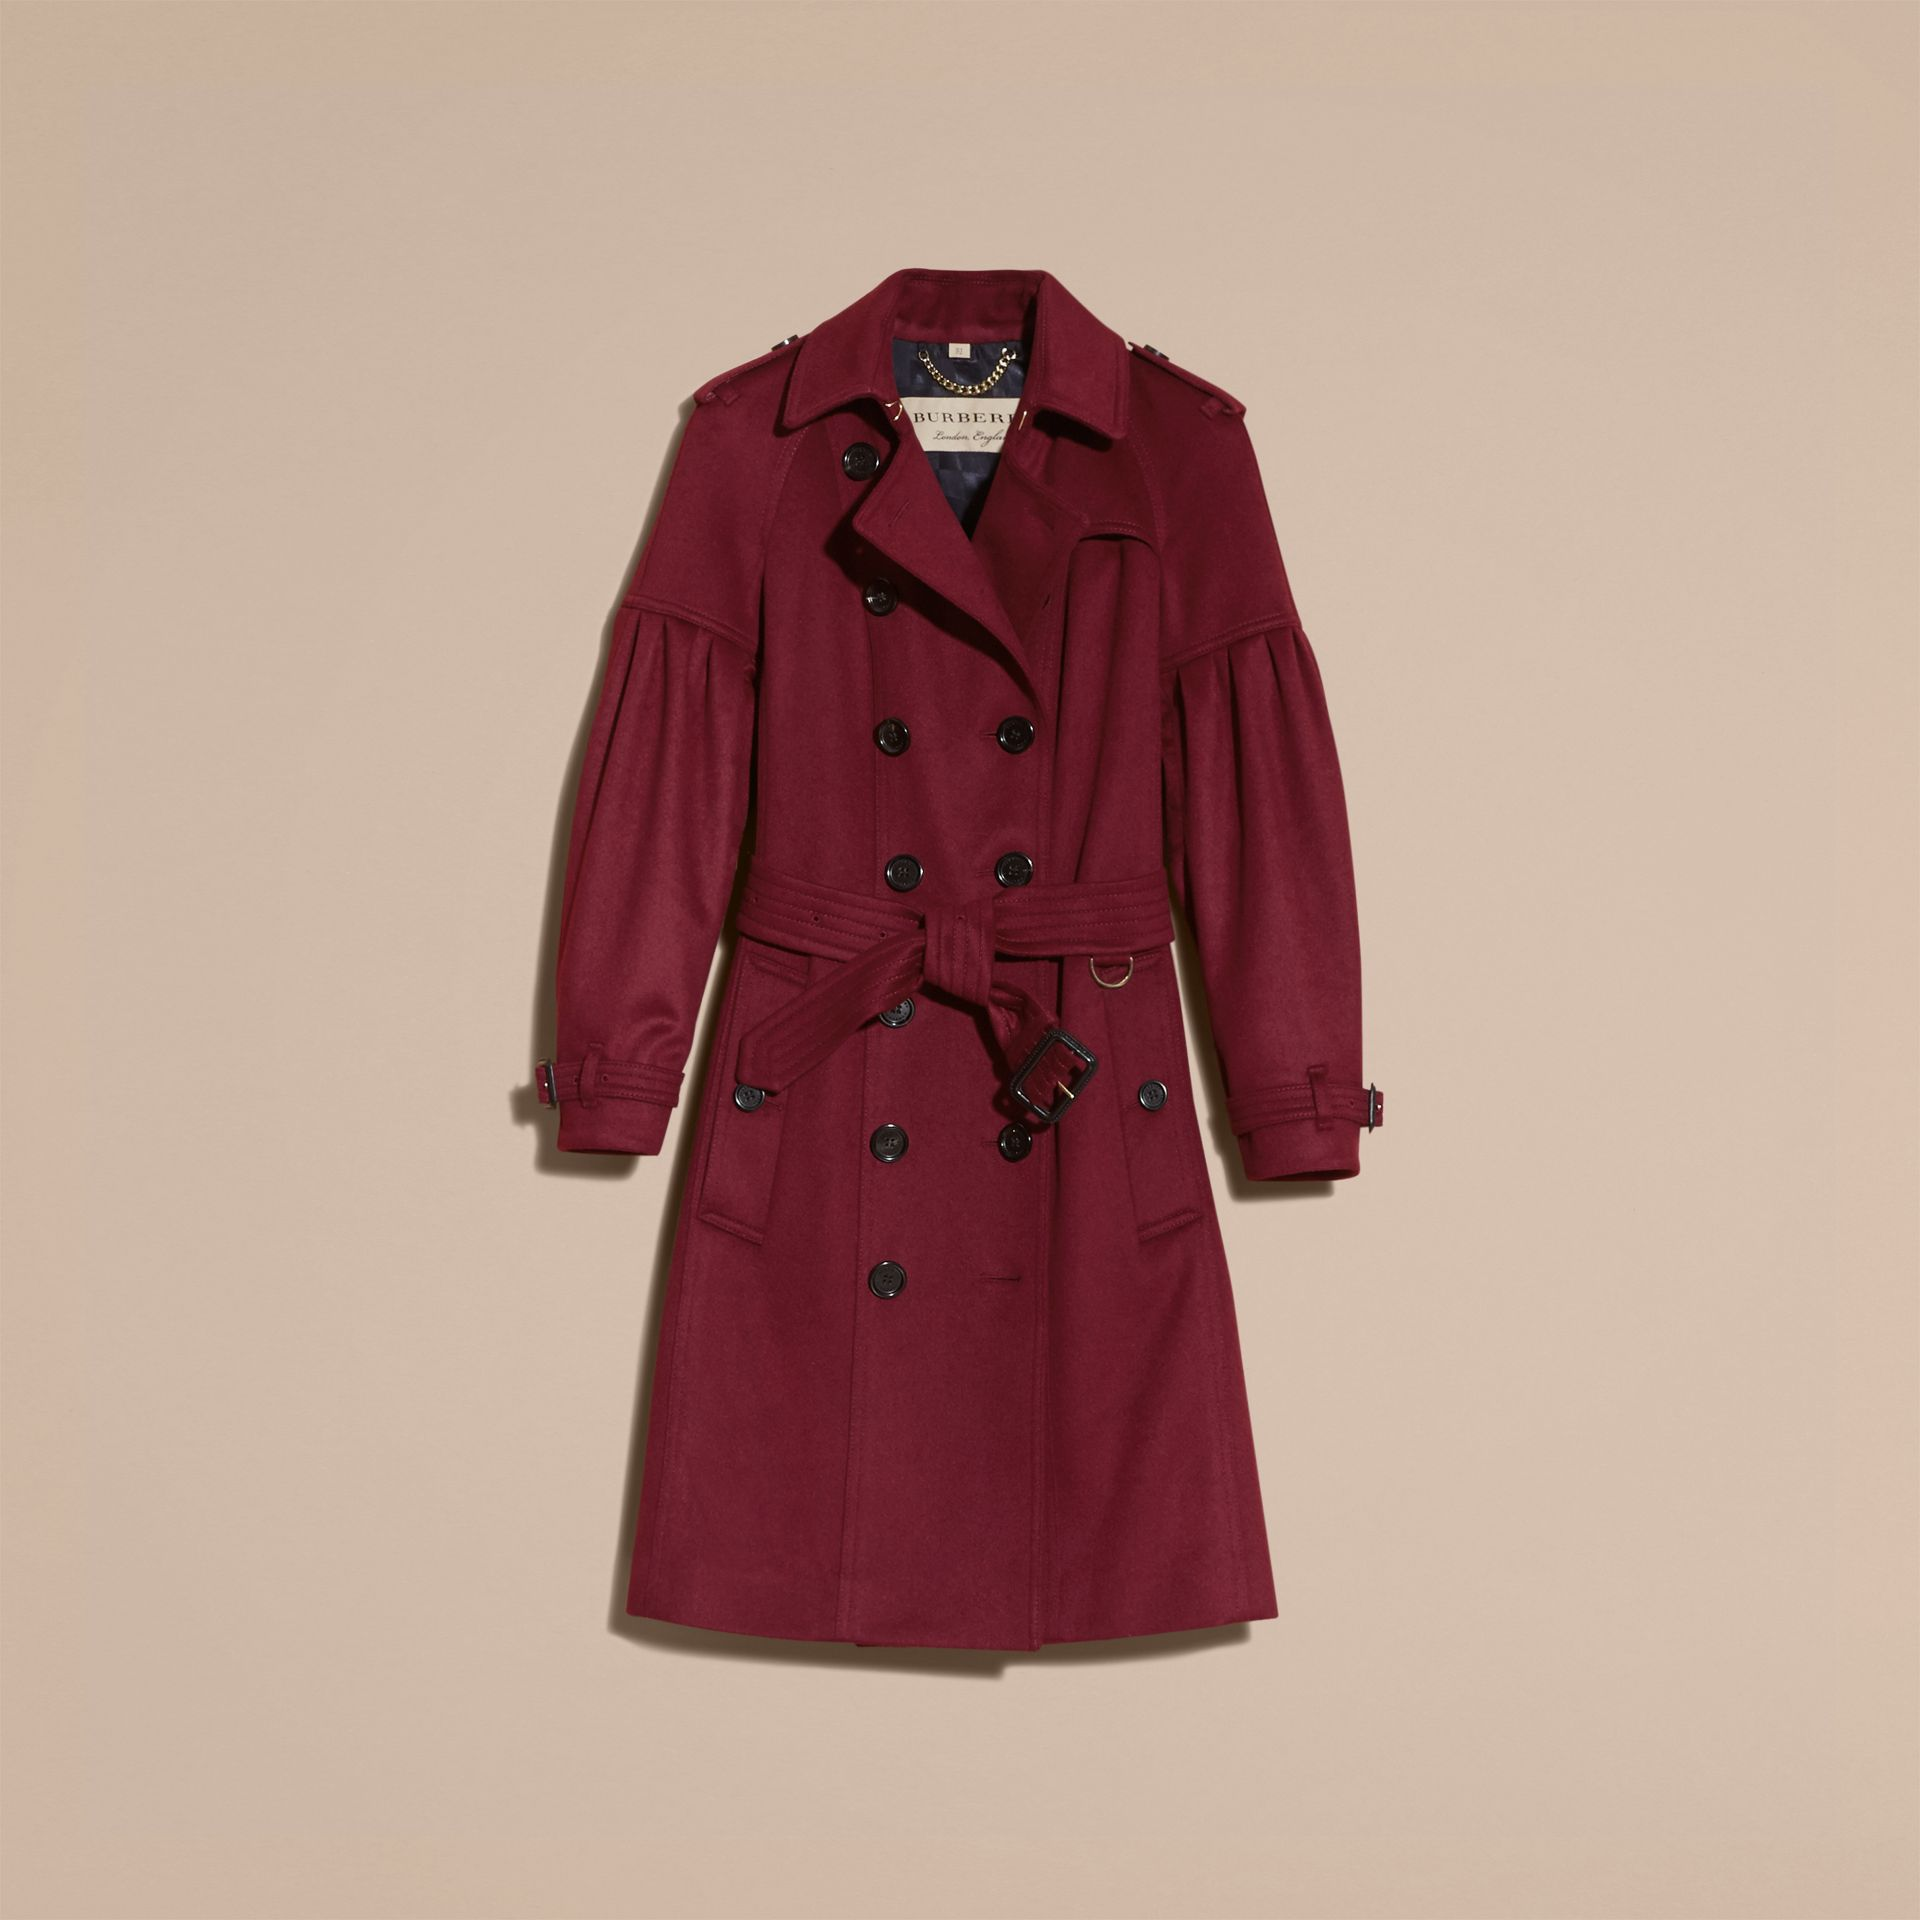 Burgundy Cashmere Trench Coat with Puff Sleeves Burgundy - gallery image 4